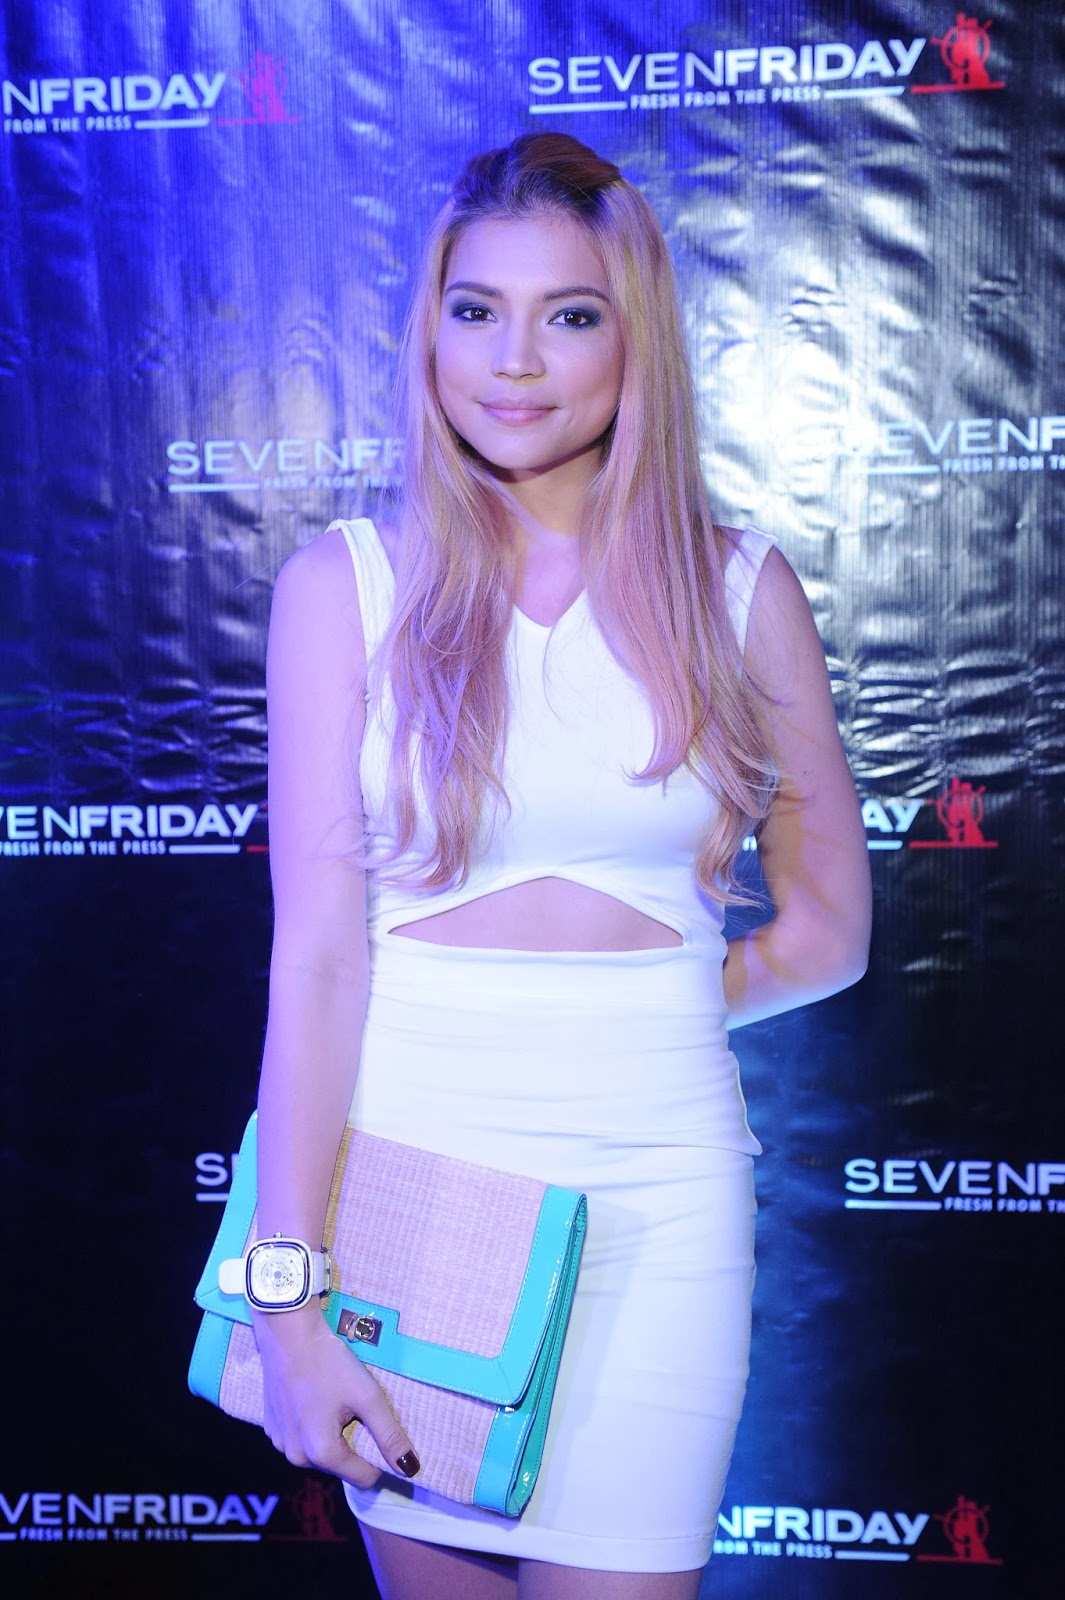 Sevenfriday Flash Party At Black Market Wazzup Pilipinas News And